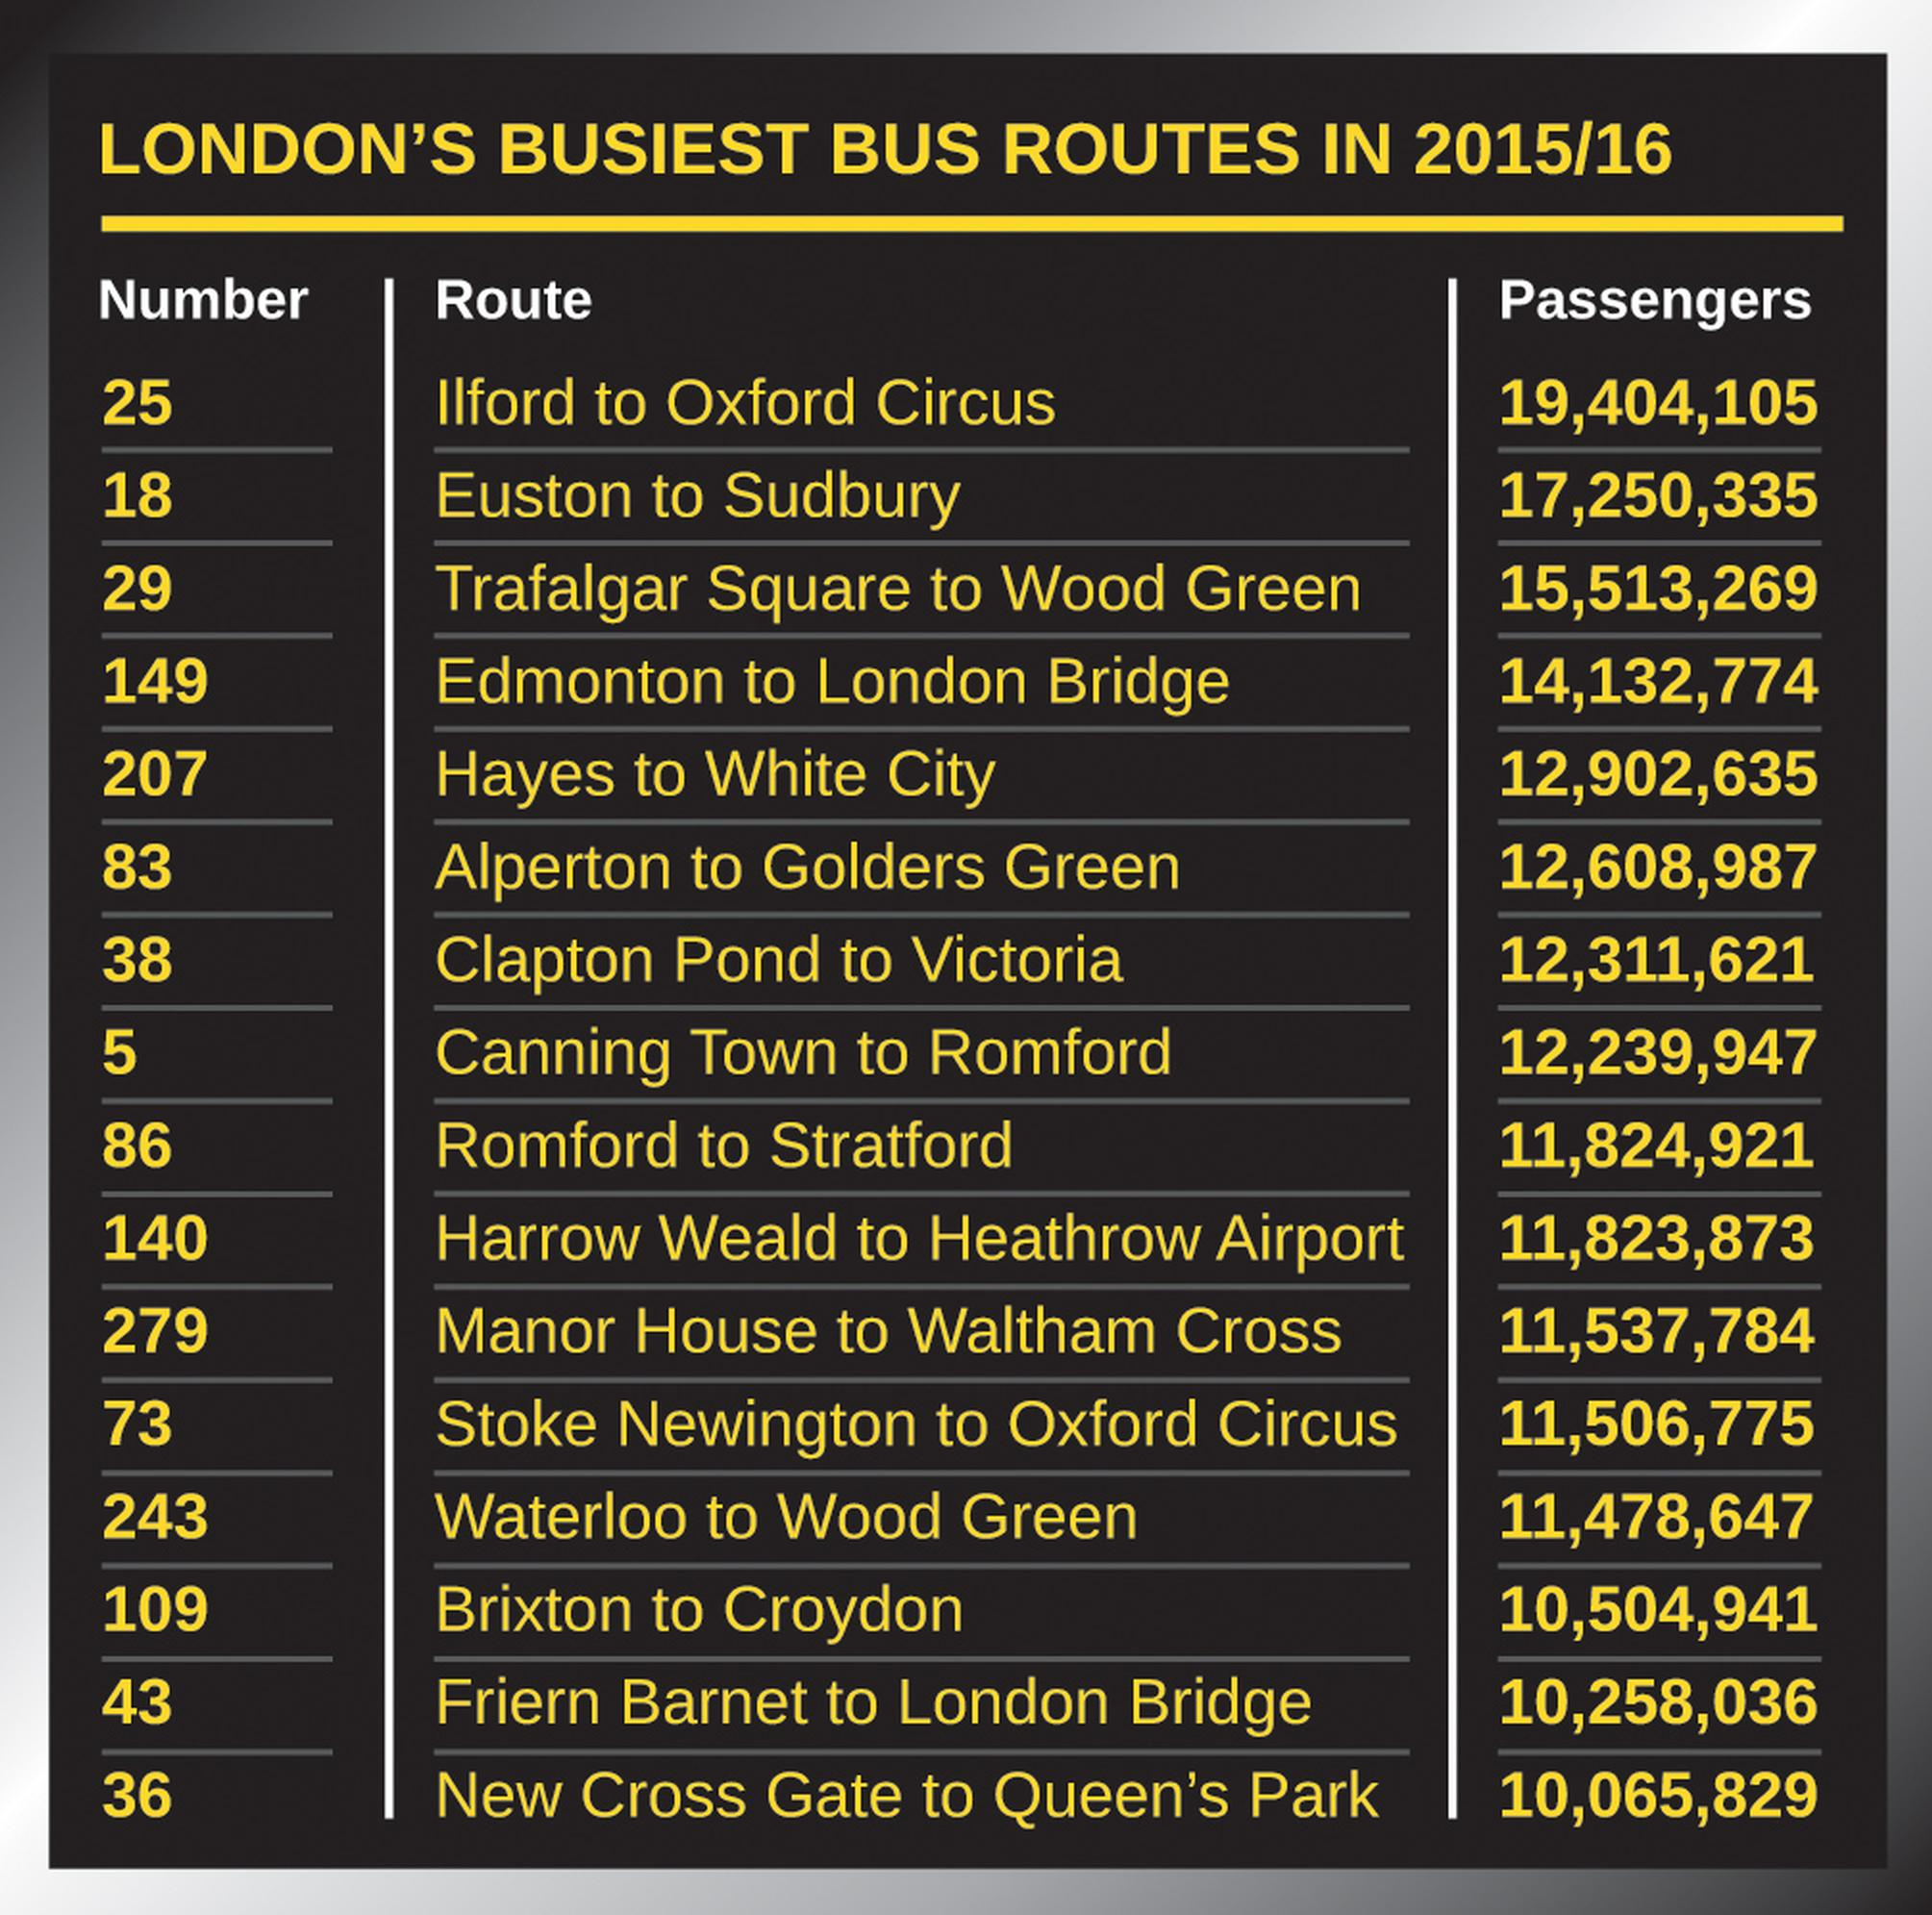 The No 25 London S Busiest Bus Route